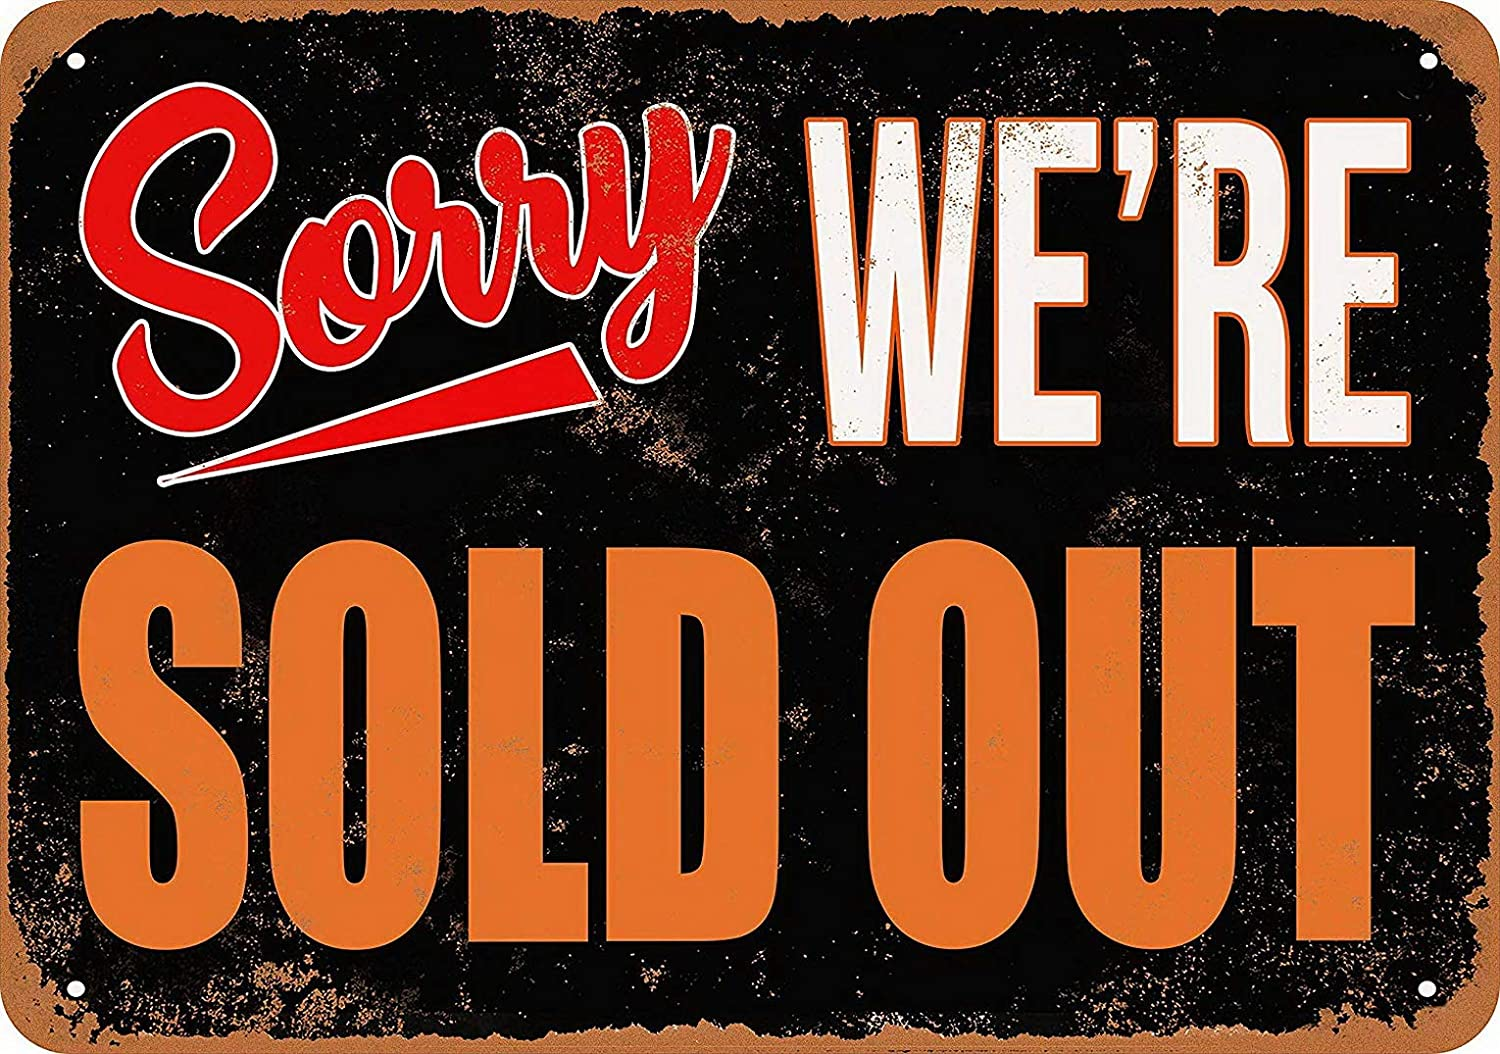 Amazon.com: UFceLl 8 x 12 Metal Sign - Sorry, We're Sold Out - Vintage Look: Home & Kitchen